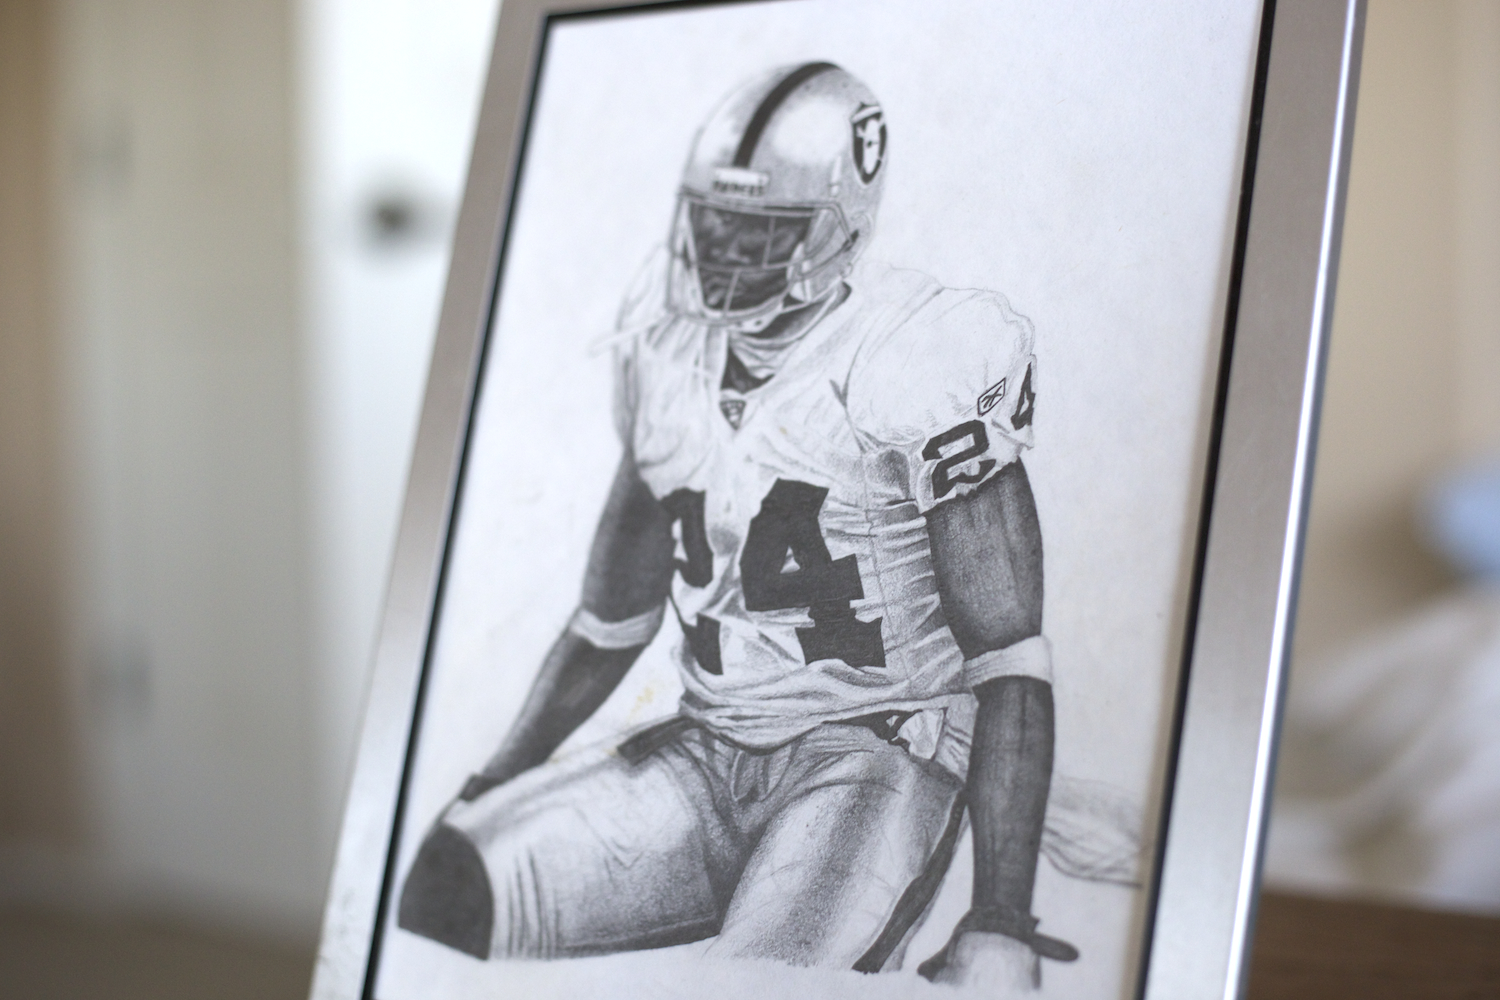 freehand-art-pencil-drawing-of-charles-woodsons-rookie-season-with-the-oakland-raiders-professional-sketching-services-for-sale-nfl